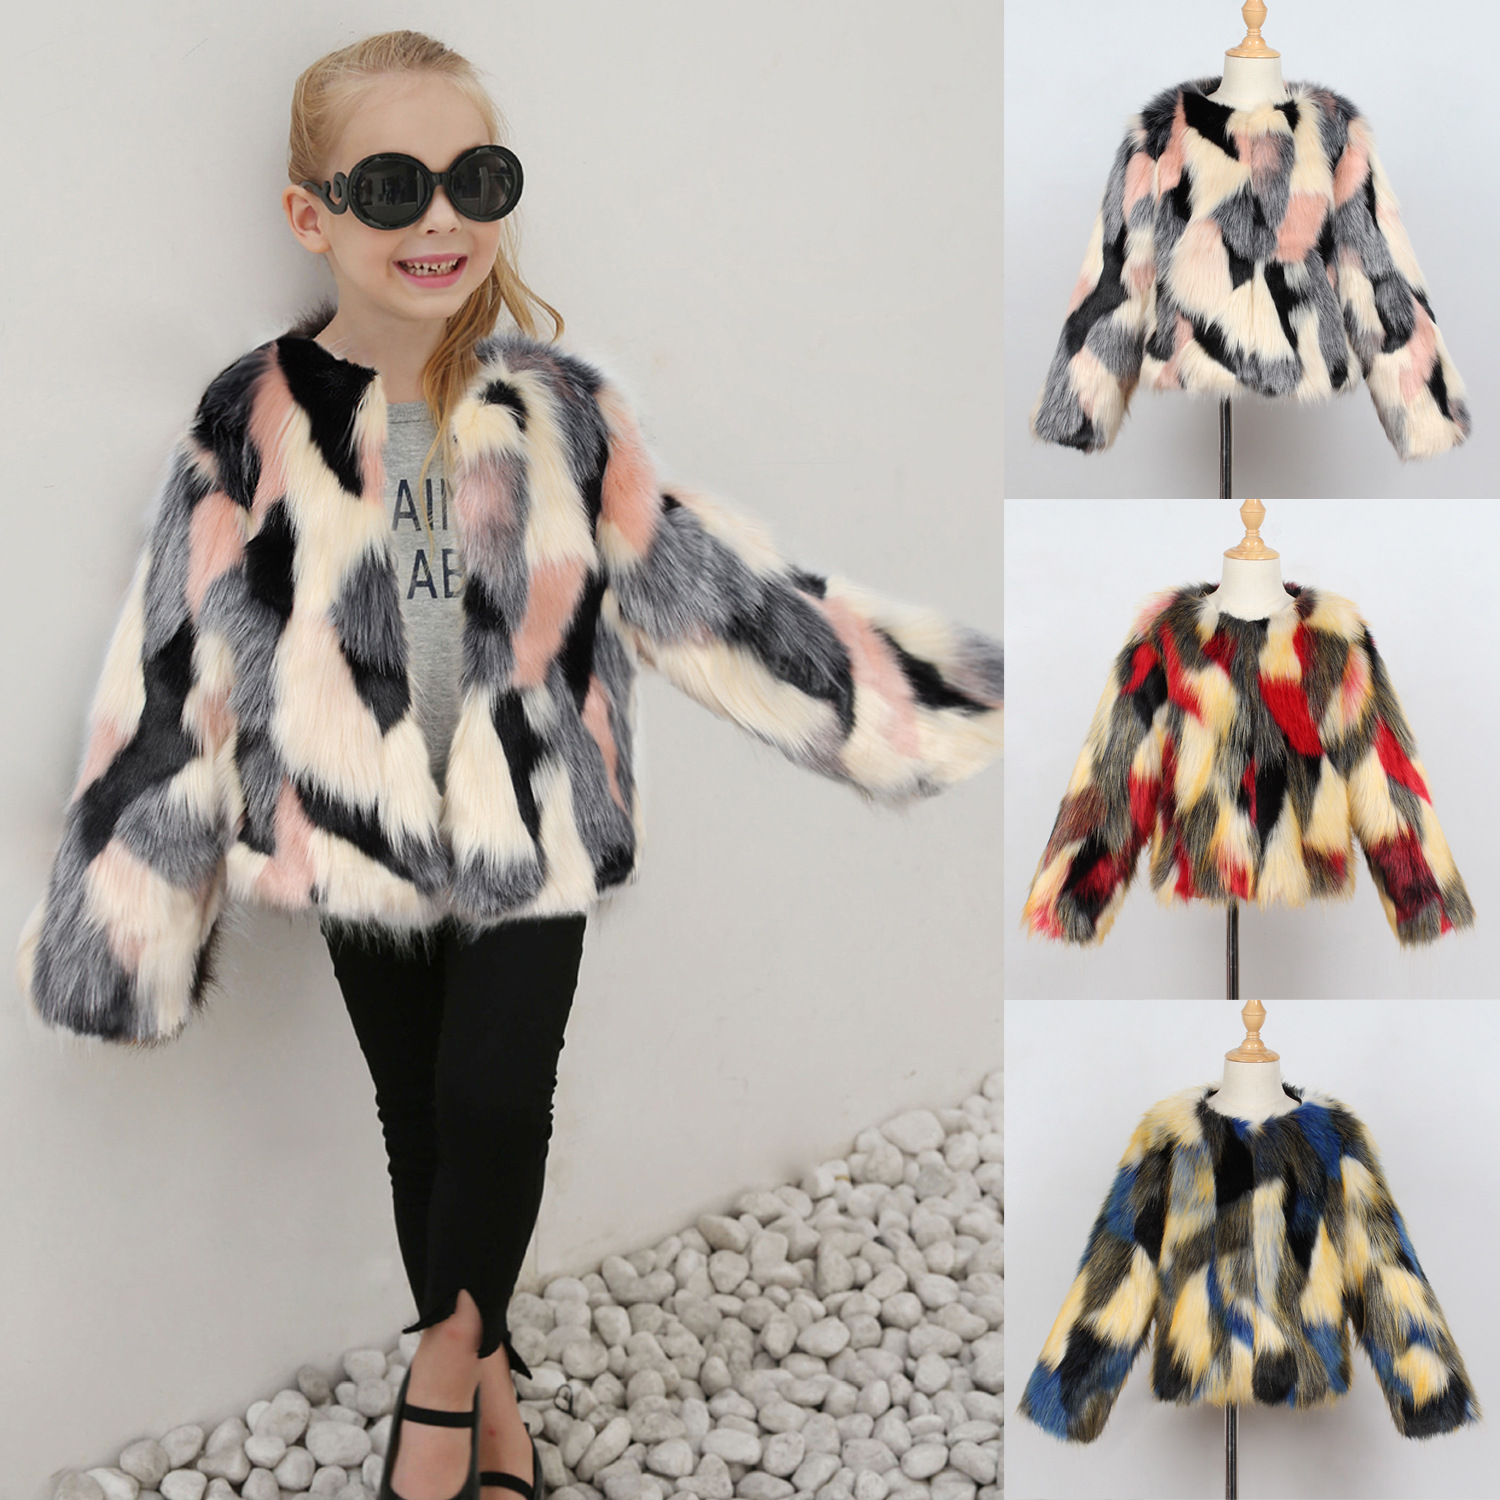 Little Girls Winter Jackets Toddler Faux Fox Fur Coats Multi fur coats Baby Girls Fur Clothes Coloful full sleeve O-neck collarLittle Girls Winter Jackets Toddler Faux Fox Fur Coats Multi fur coats Baby Girls Fur Clothes Coloful full sleeve O-neck collar